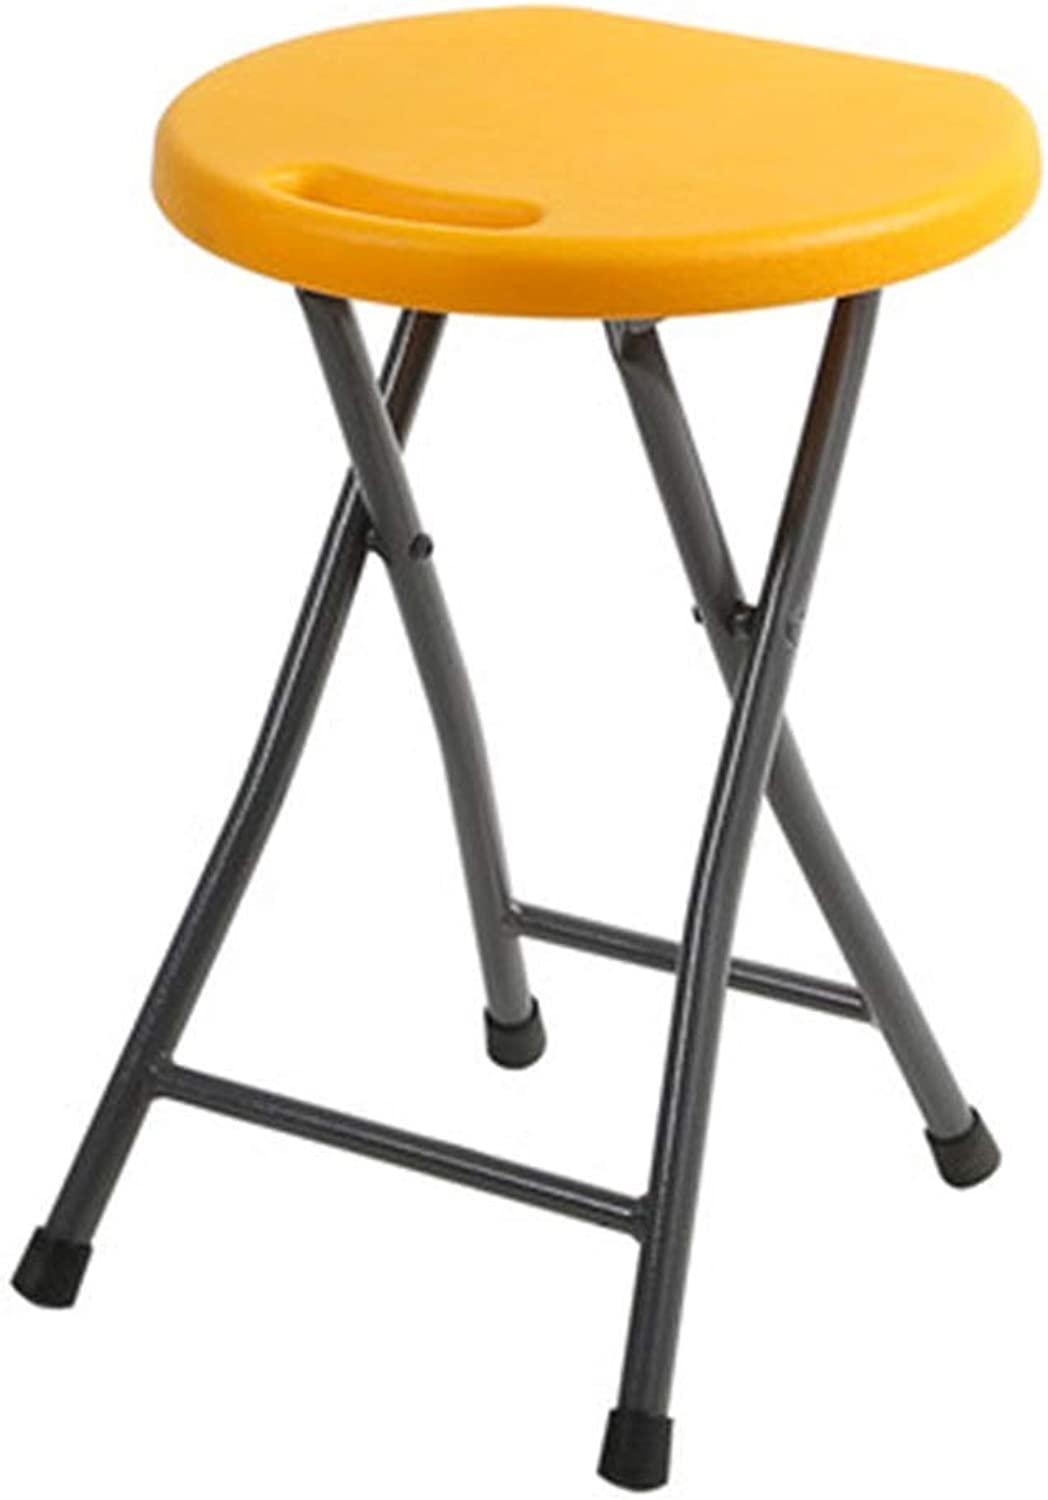 Folding Chair Folding Stool Household Plastic High Stool Portable Outdoor Stool Adult Sitting Stool Student Dormitory Stool Folding Chair